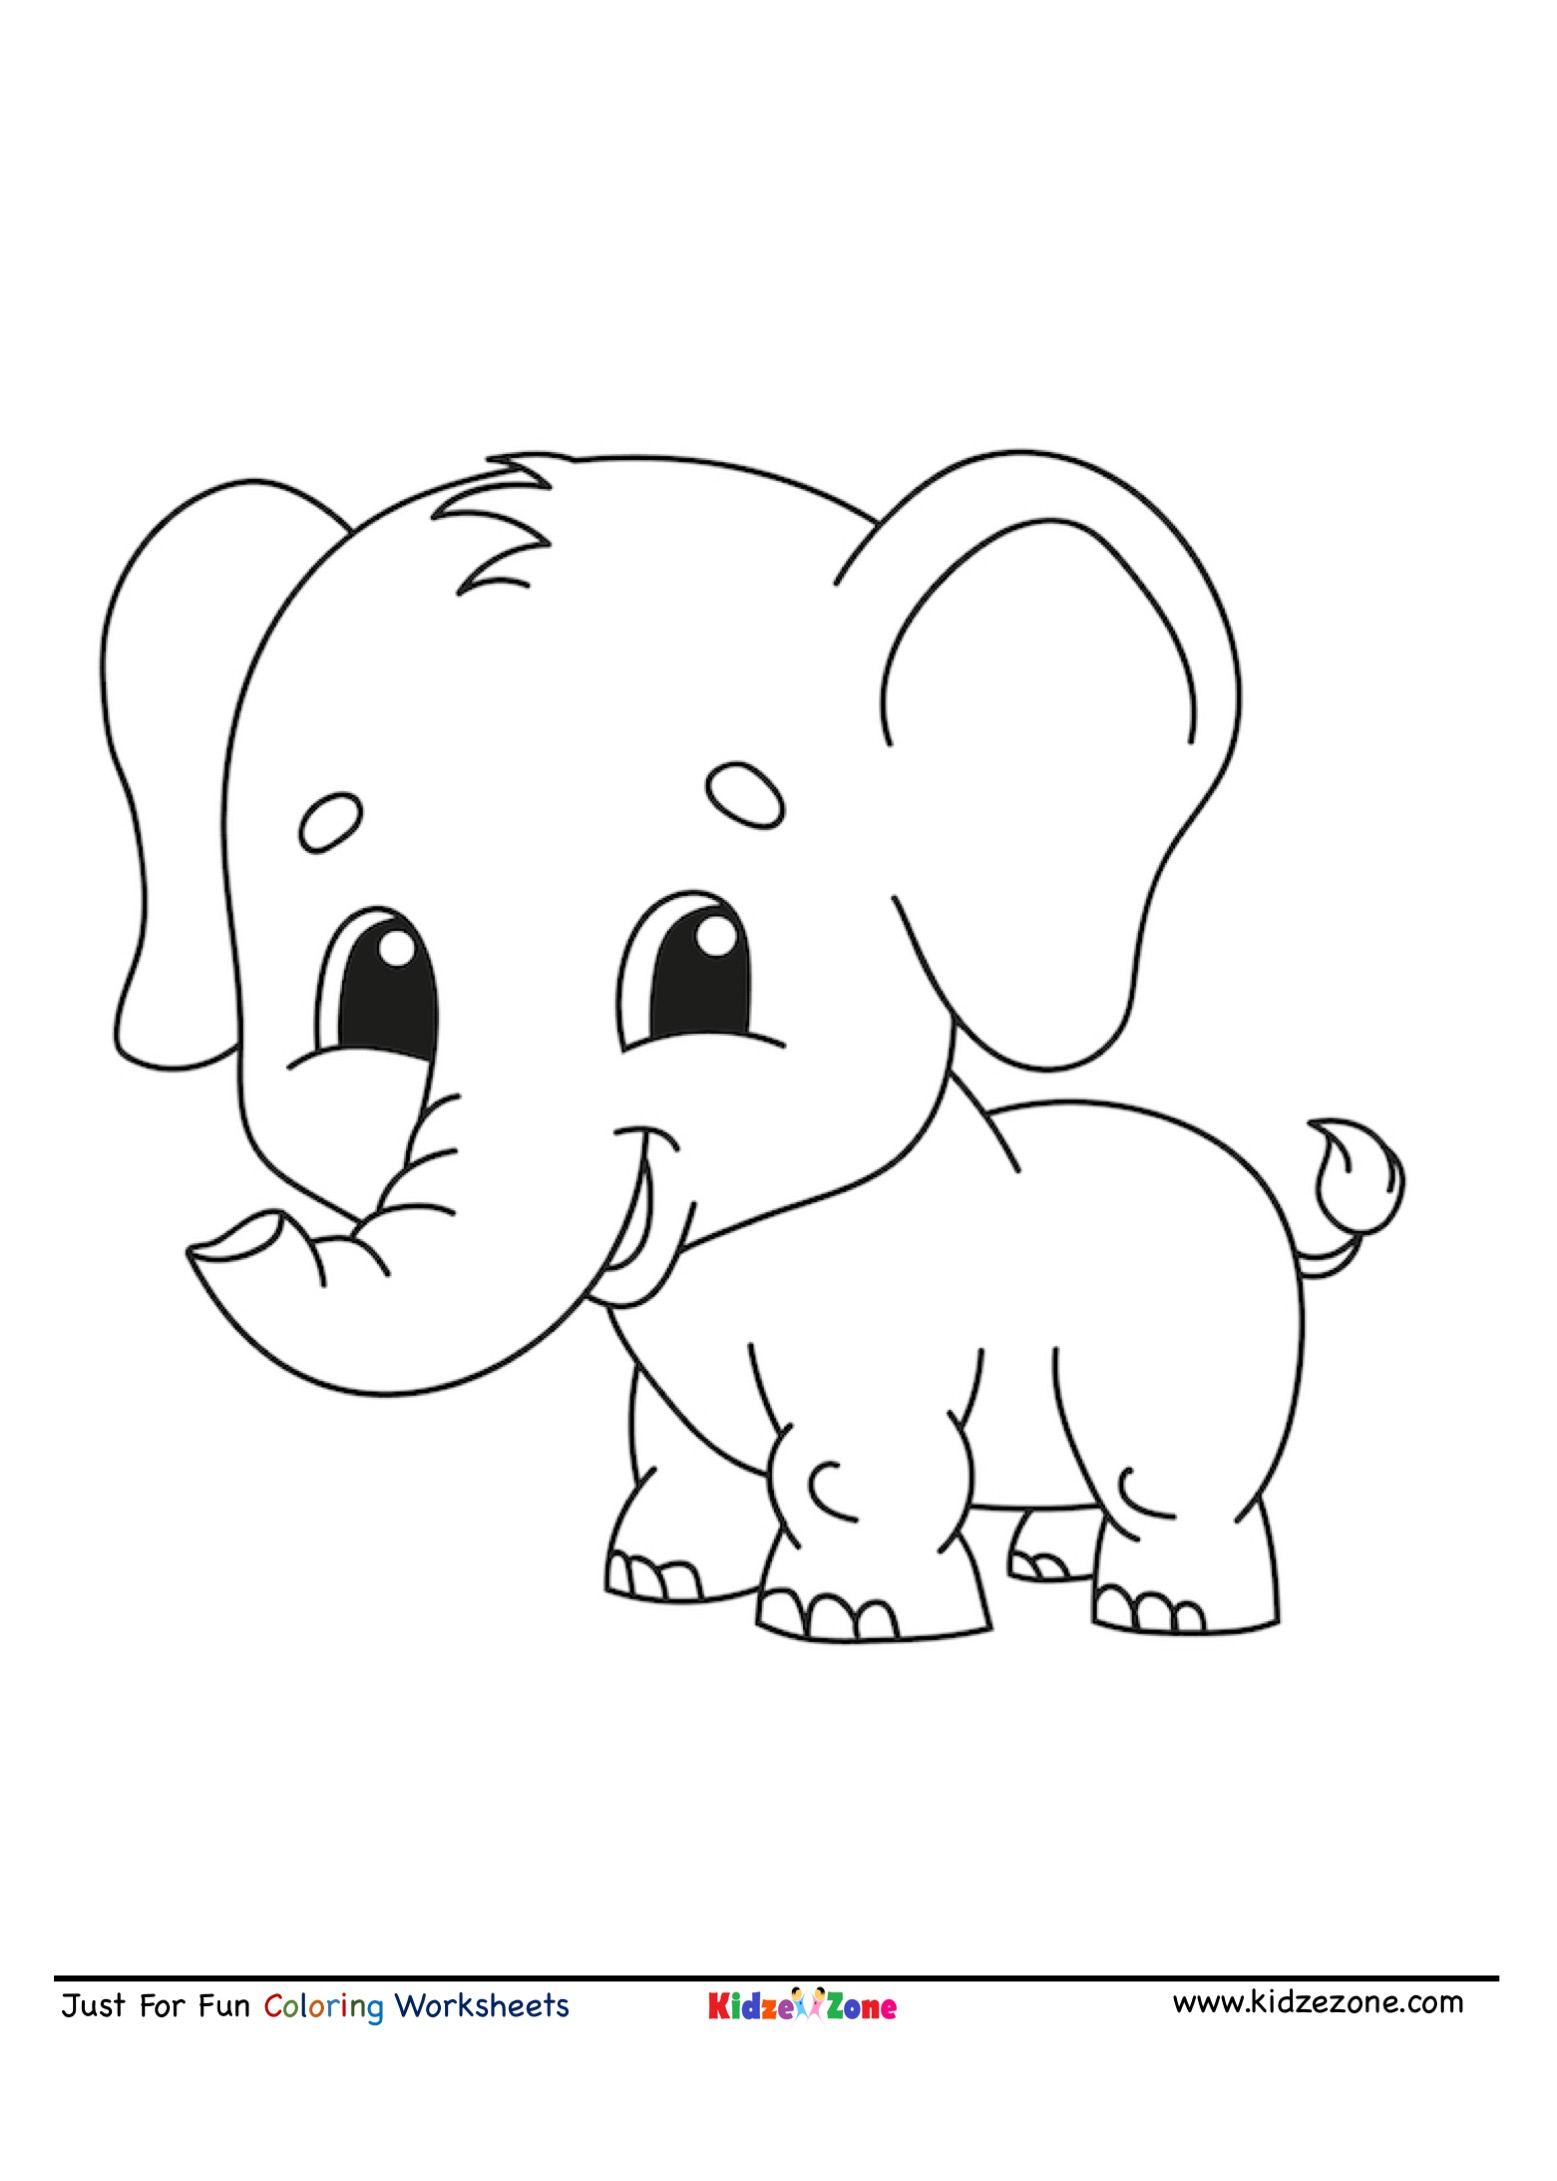 adorable baby elephant coloring pages baby elephant coloring pages to download and print for free adorable baby coloring elephant pages